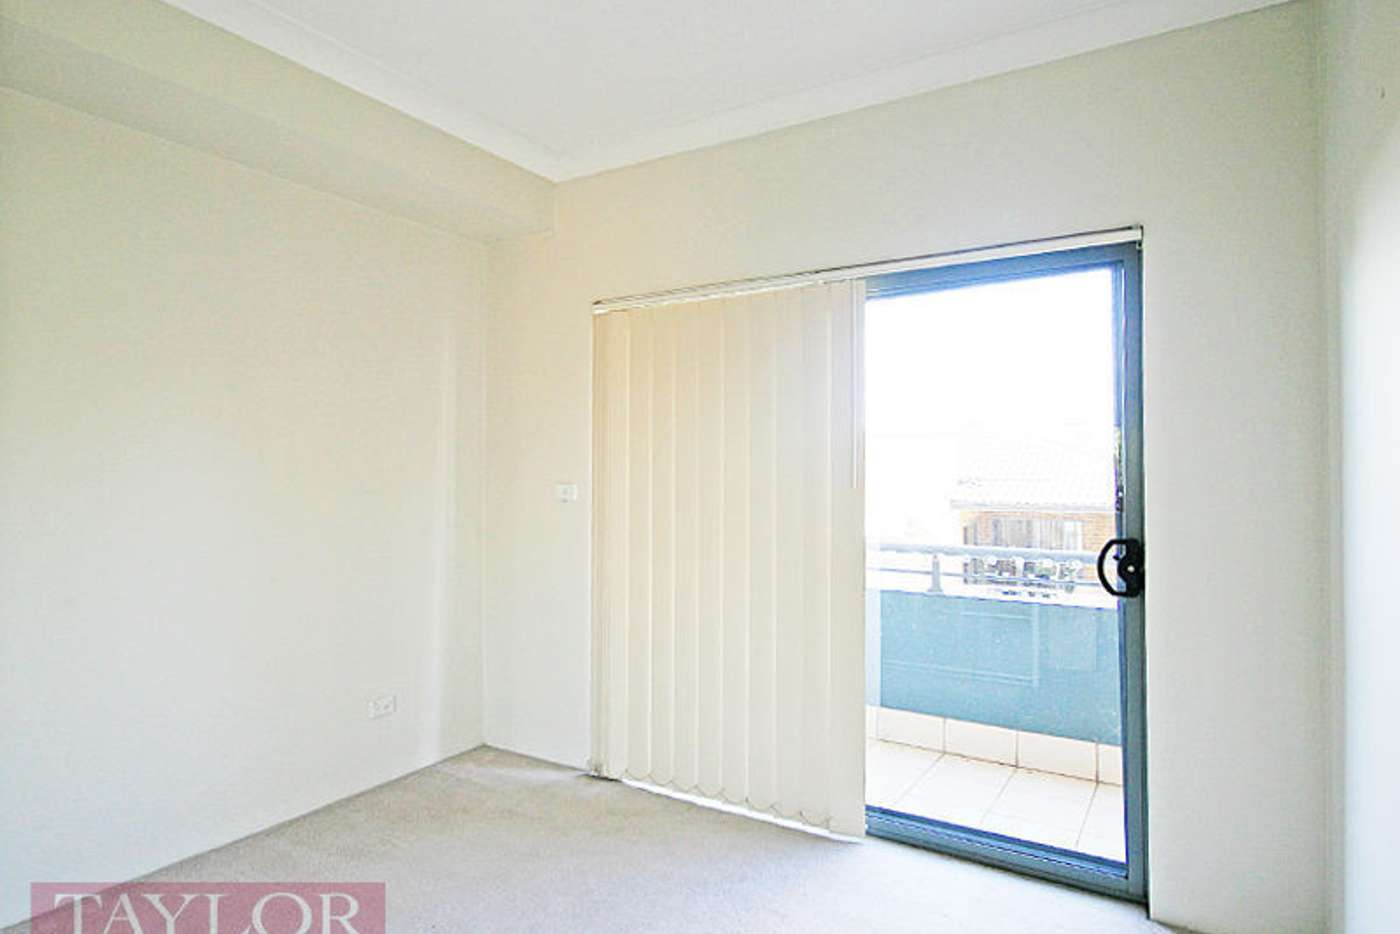 Sixth view of Homely unit listing, 7/3-7 O'Reilly Street, Parramatta NSW 2150